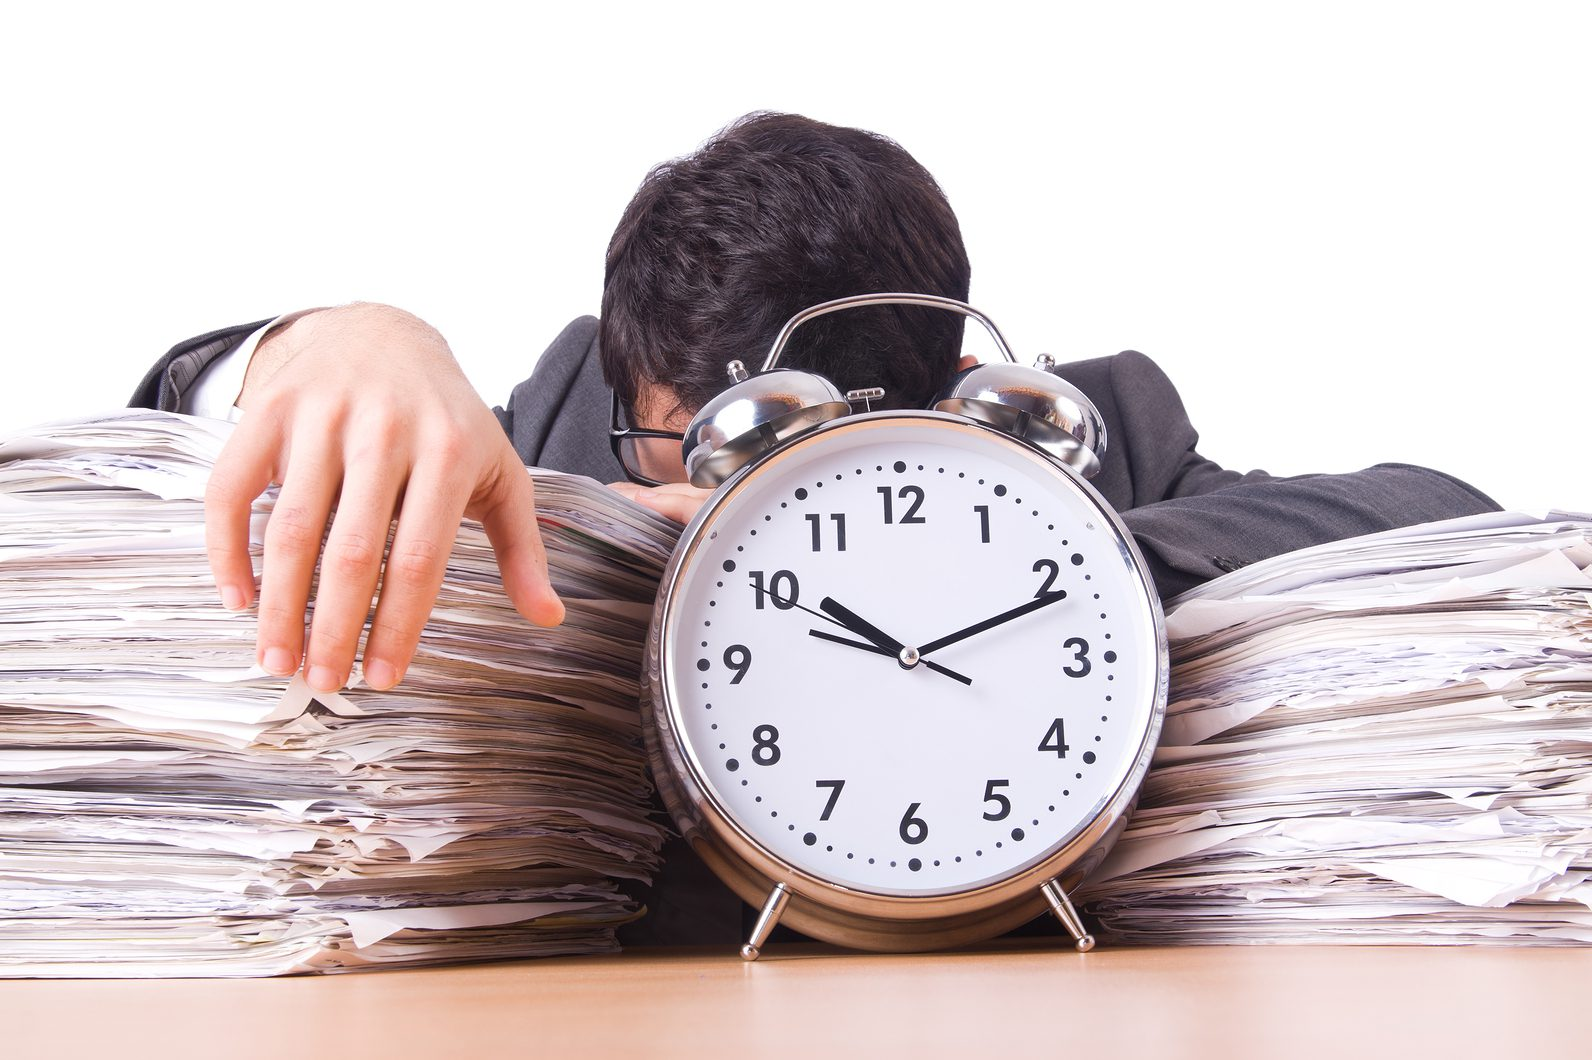 10 tips voor beter timemanagement<br><br>